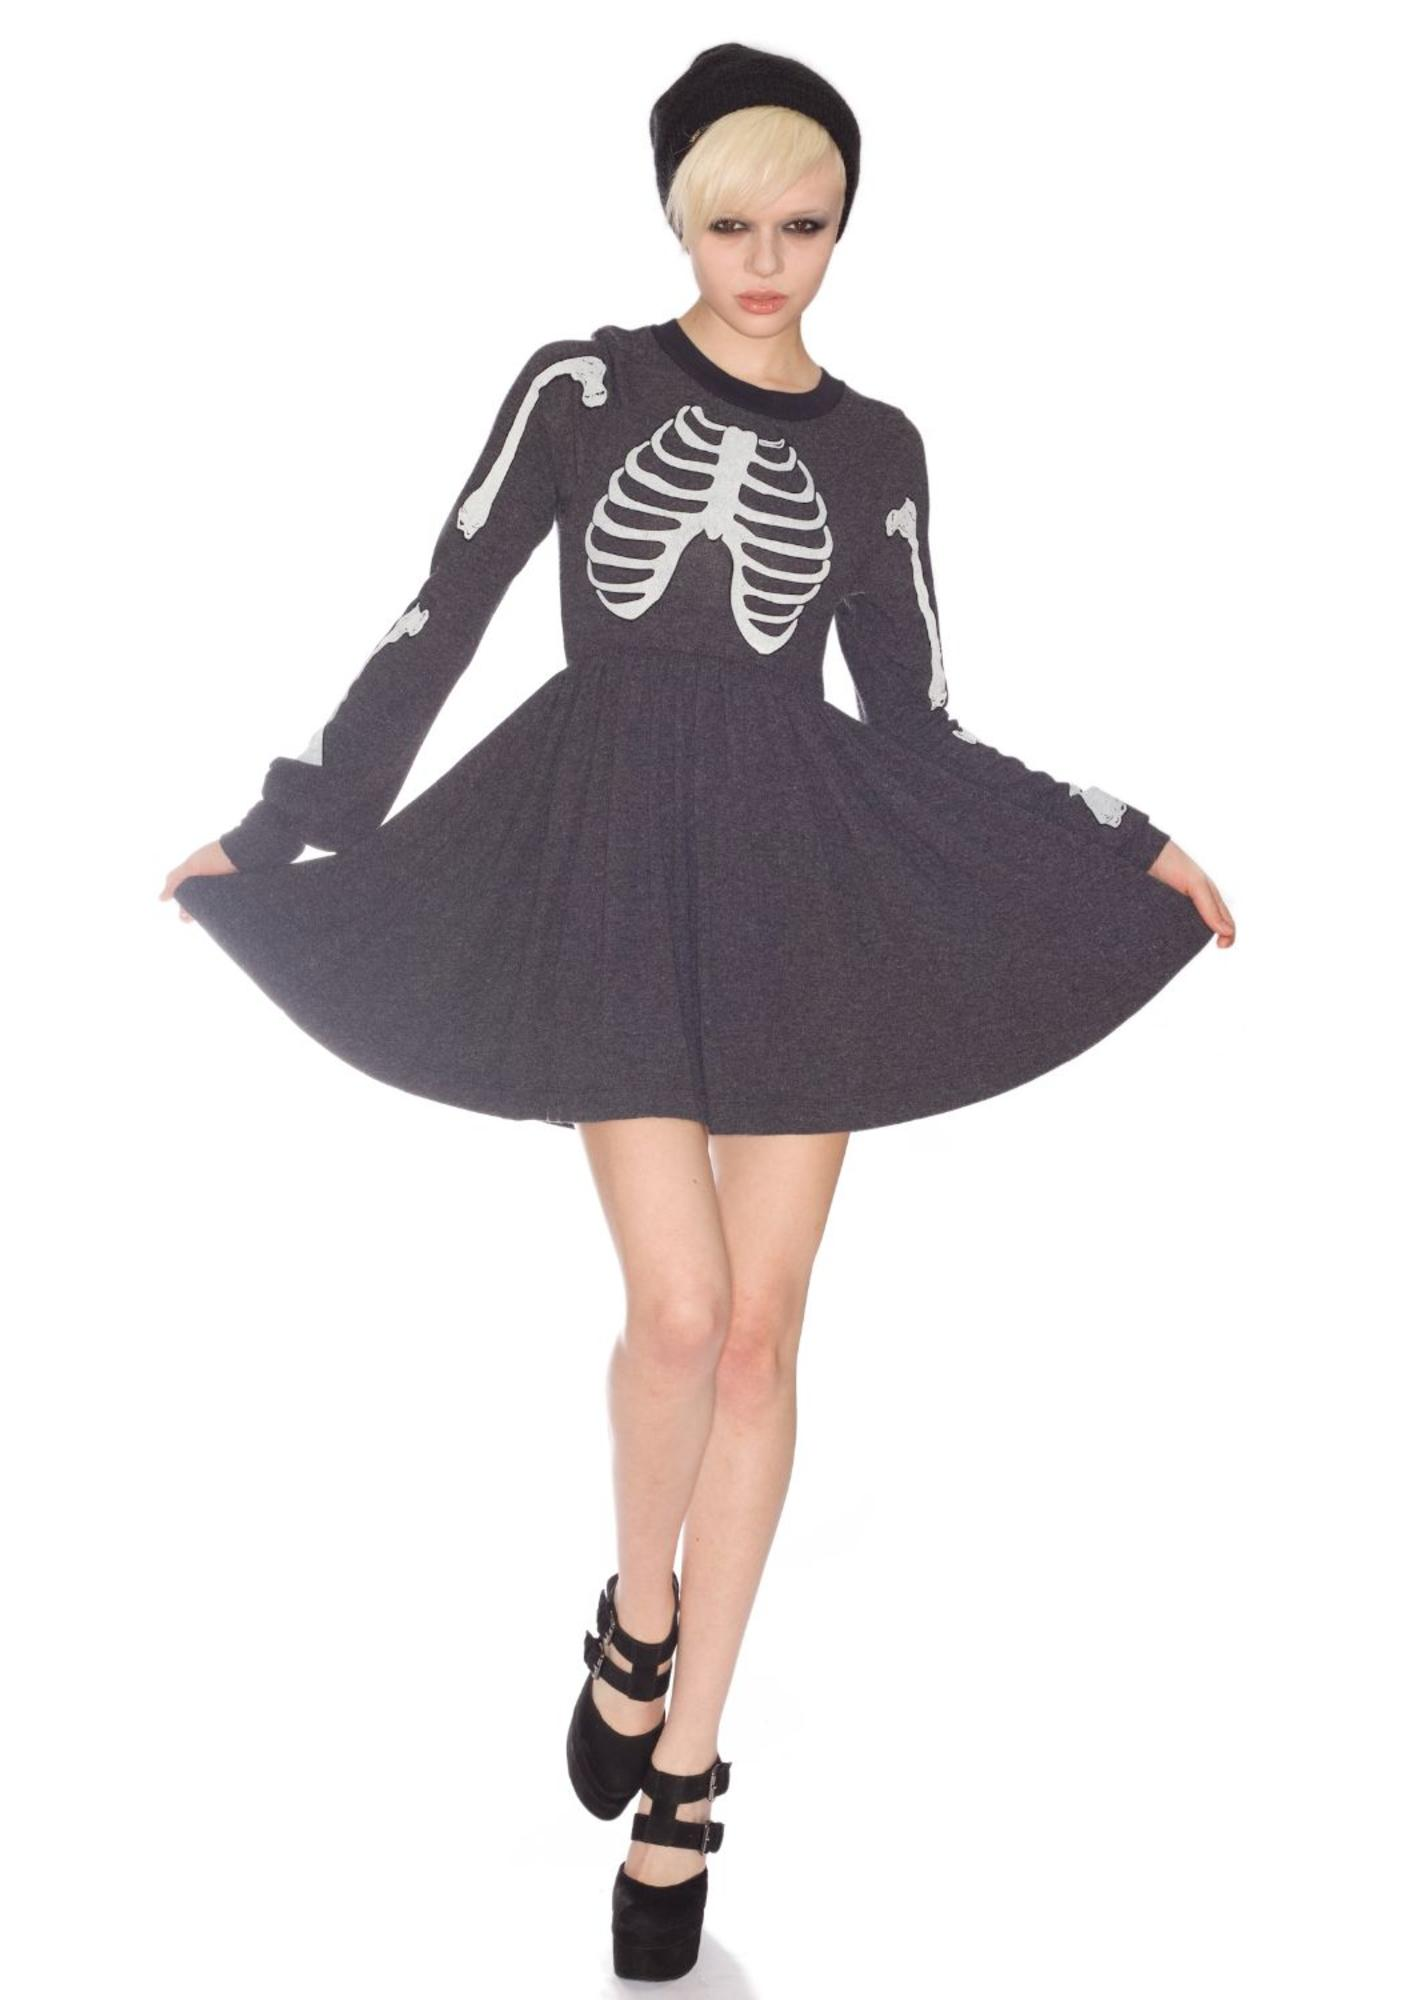 aa4c76c3f62 Wildfox Couture Skeleton London Baby Doll Dress